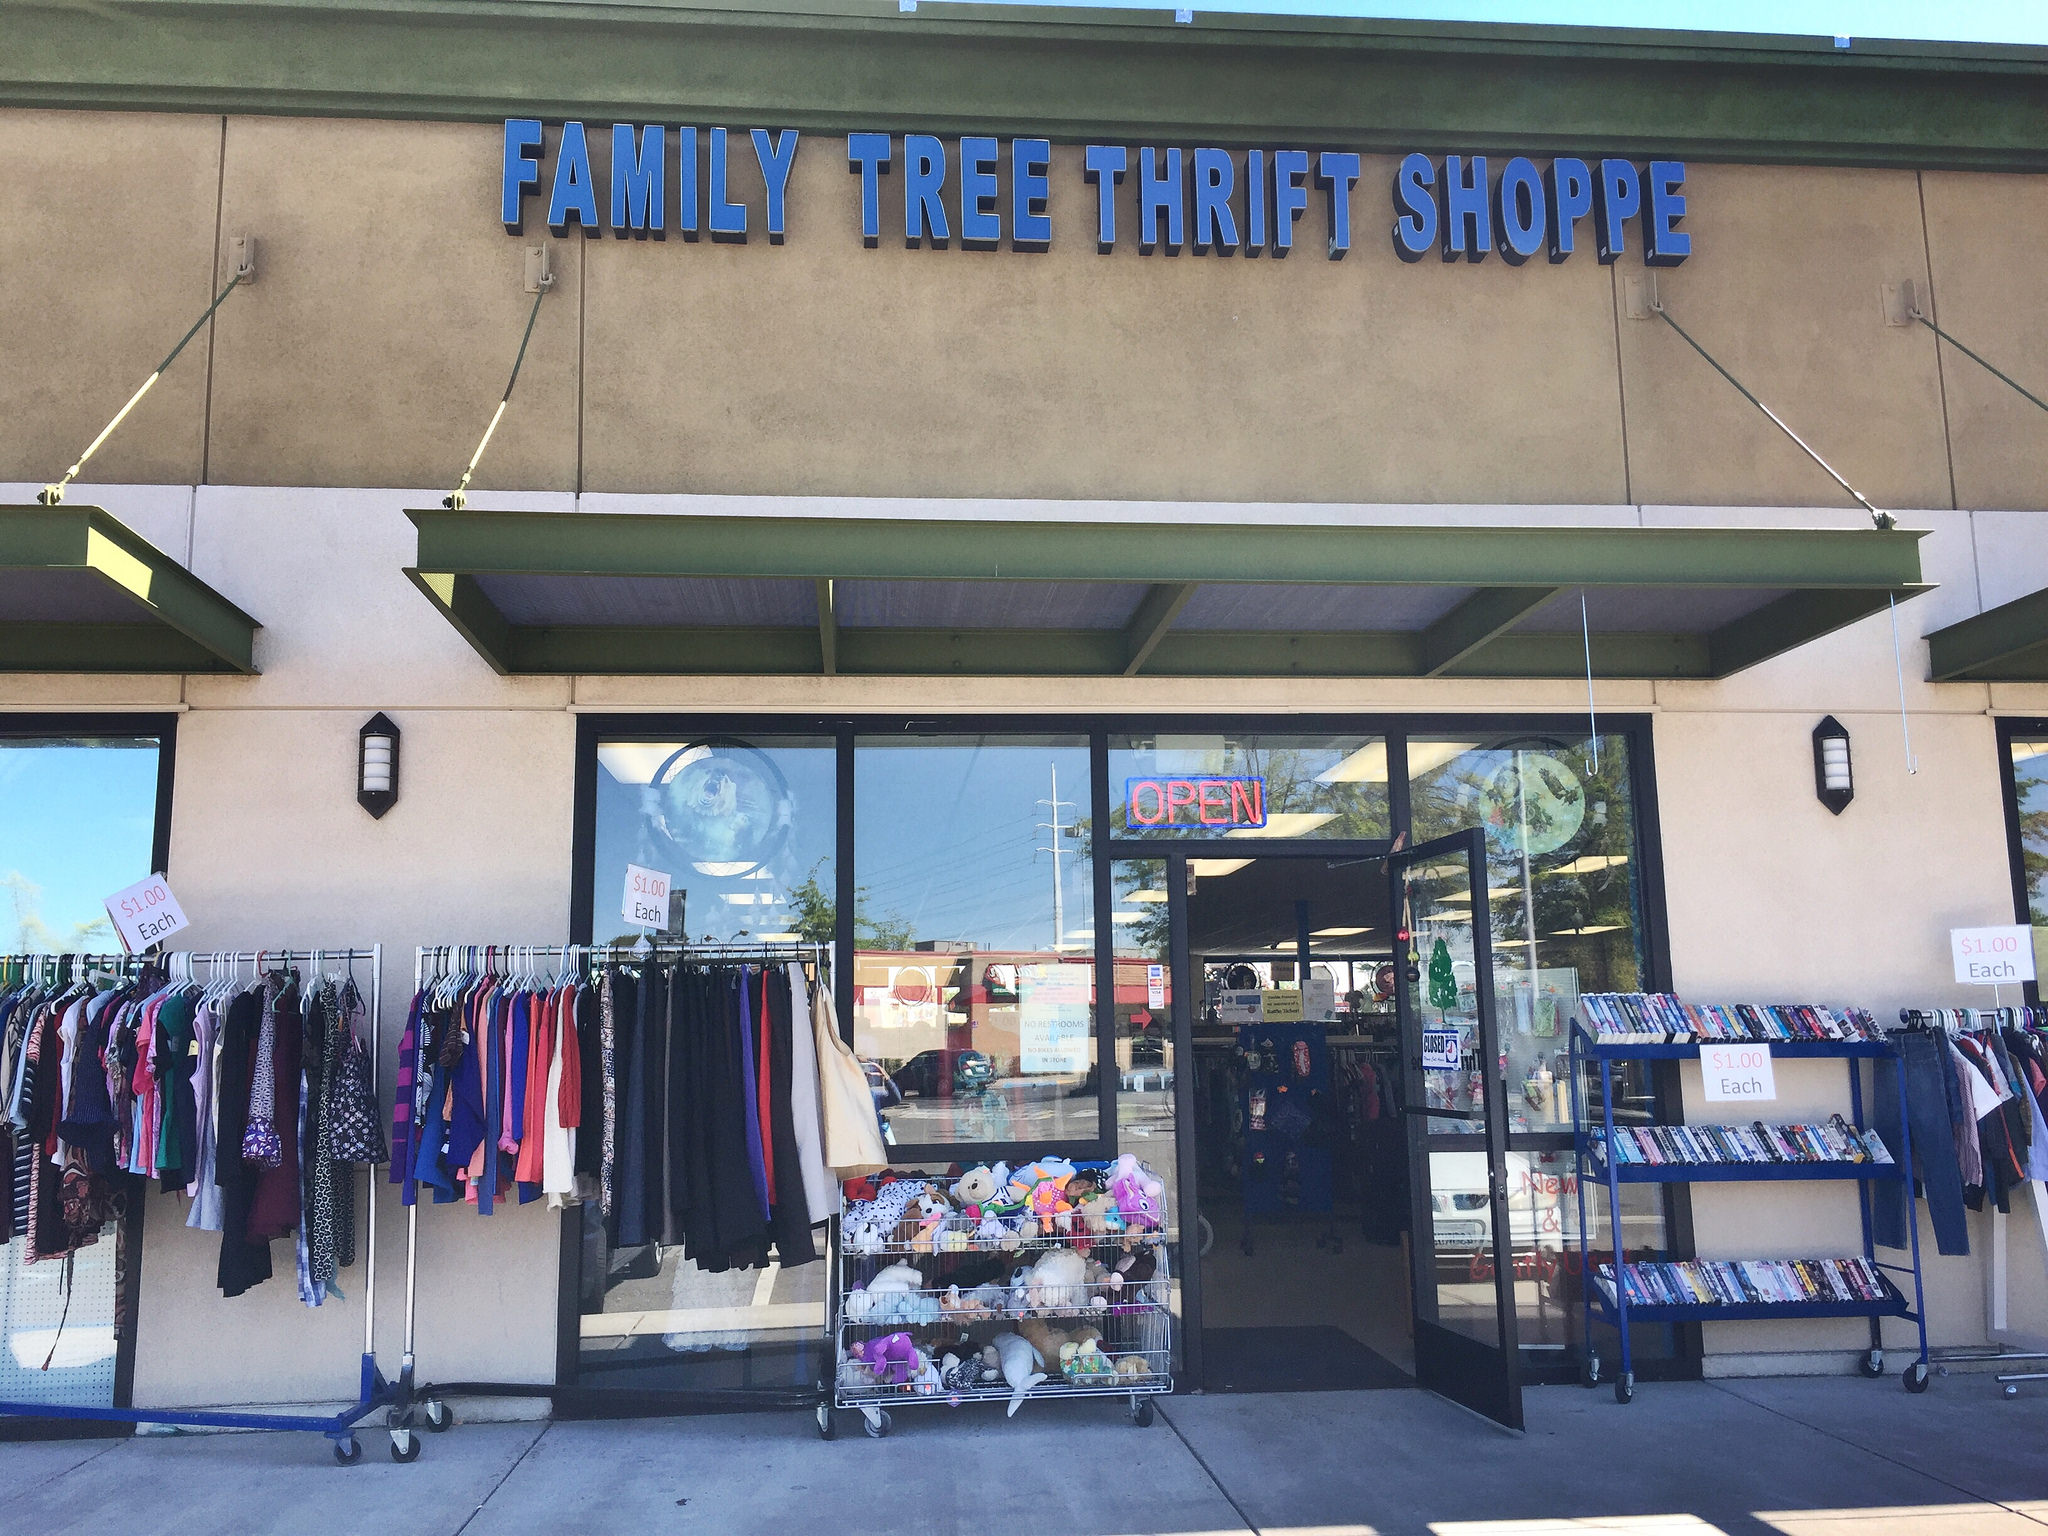 Family Tree Thrift Shoppe Sacramento California thrifting shopping whatiwore2day